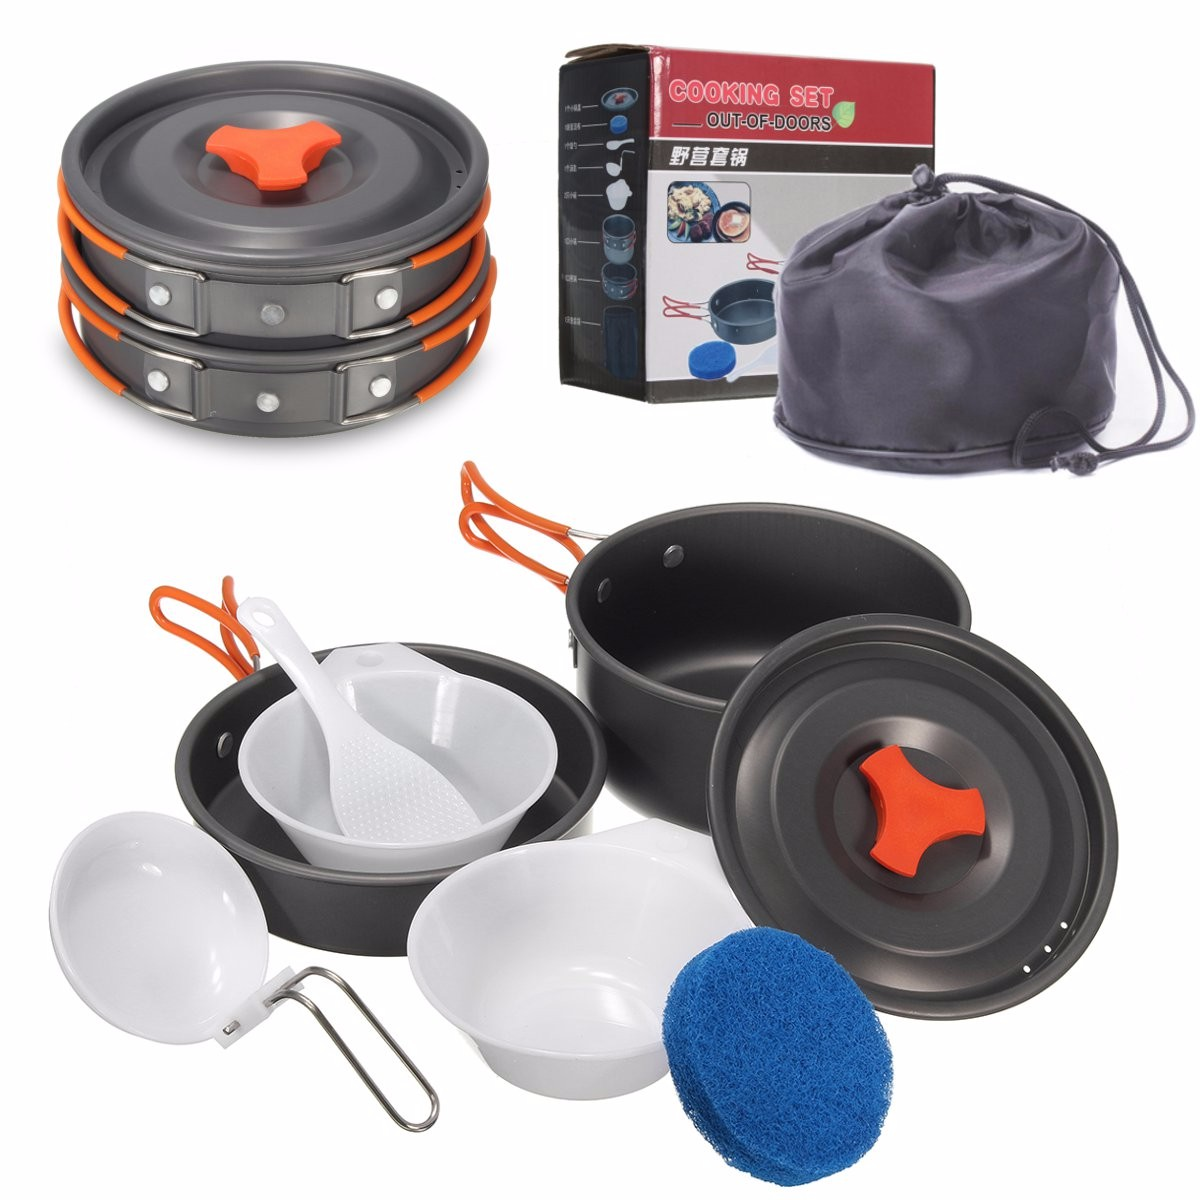 8 Piece Outdoor Cooking Kit Compact Lightweight Cookware Set Includes Pots Pan Bowls Spoon Sponge For Travel Camping / Backpacking / Hiking / BBQ / Survival For 1-2 people